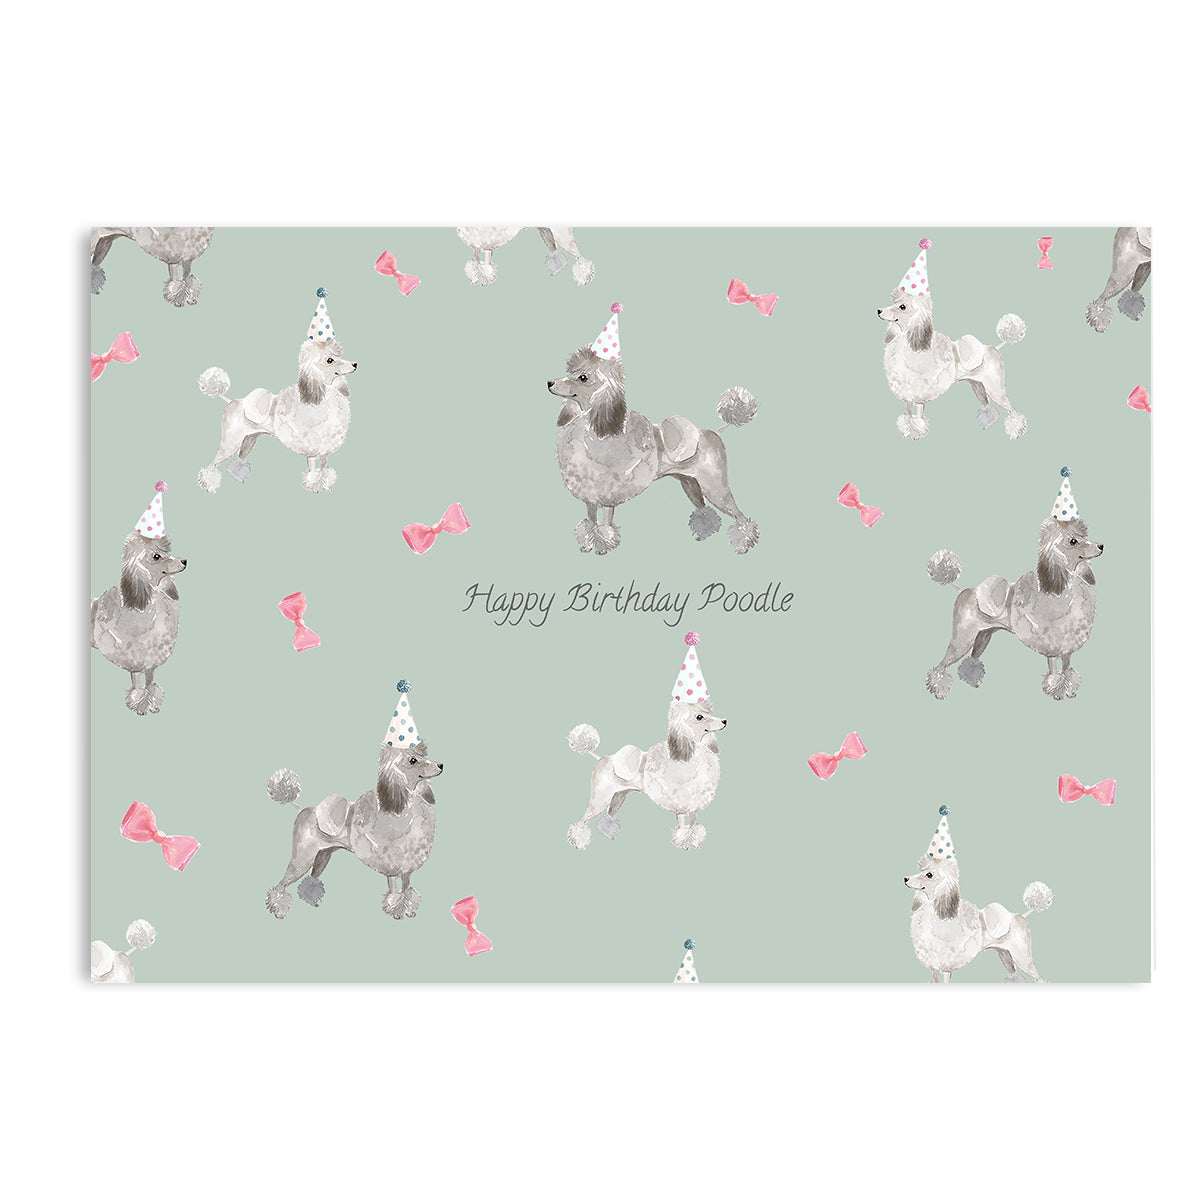 Happy Birthday Poodle Card-Greeting Cards-Mode Prints